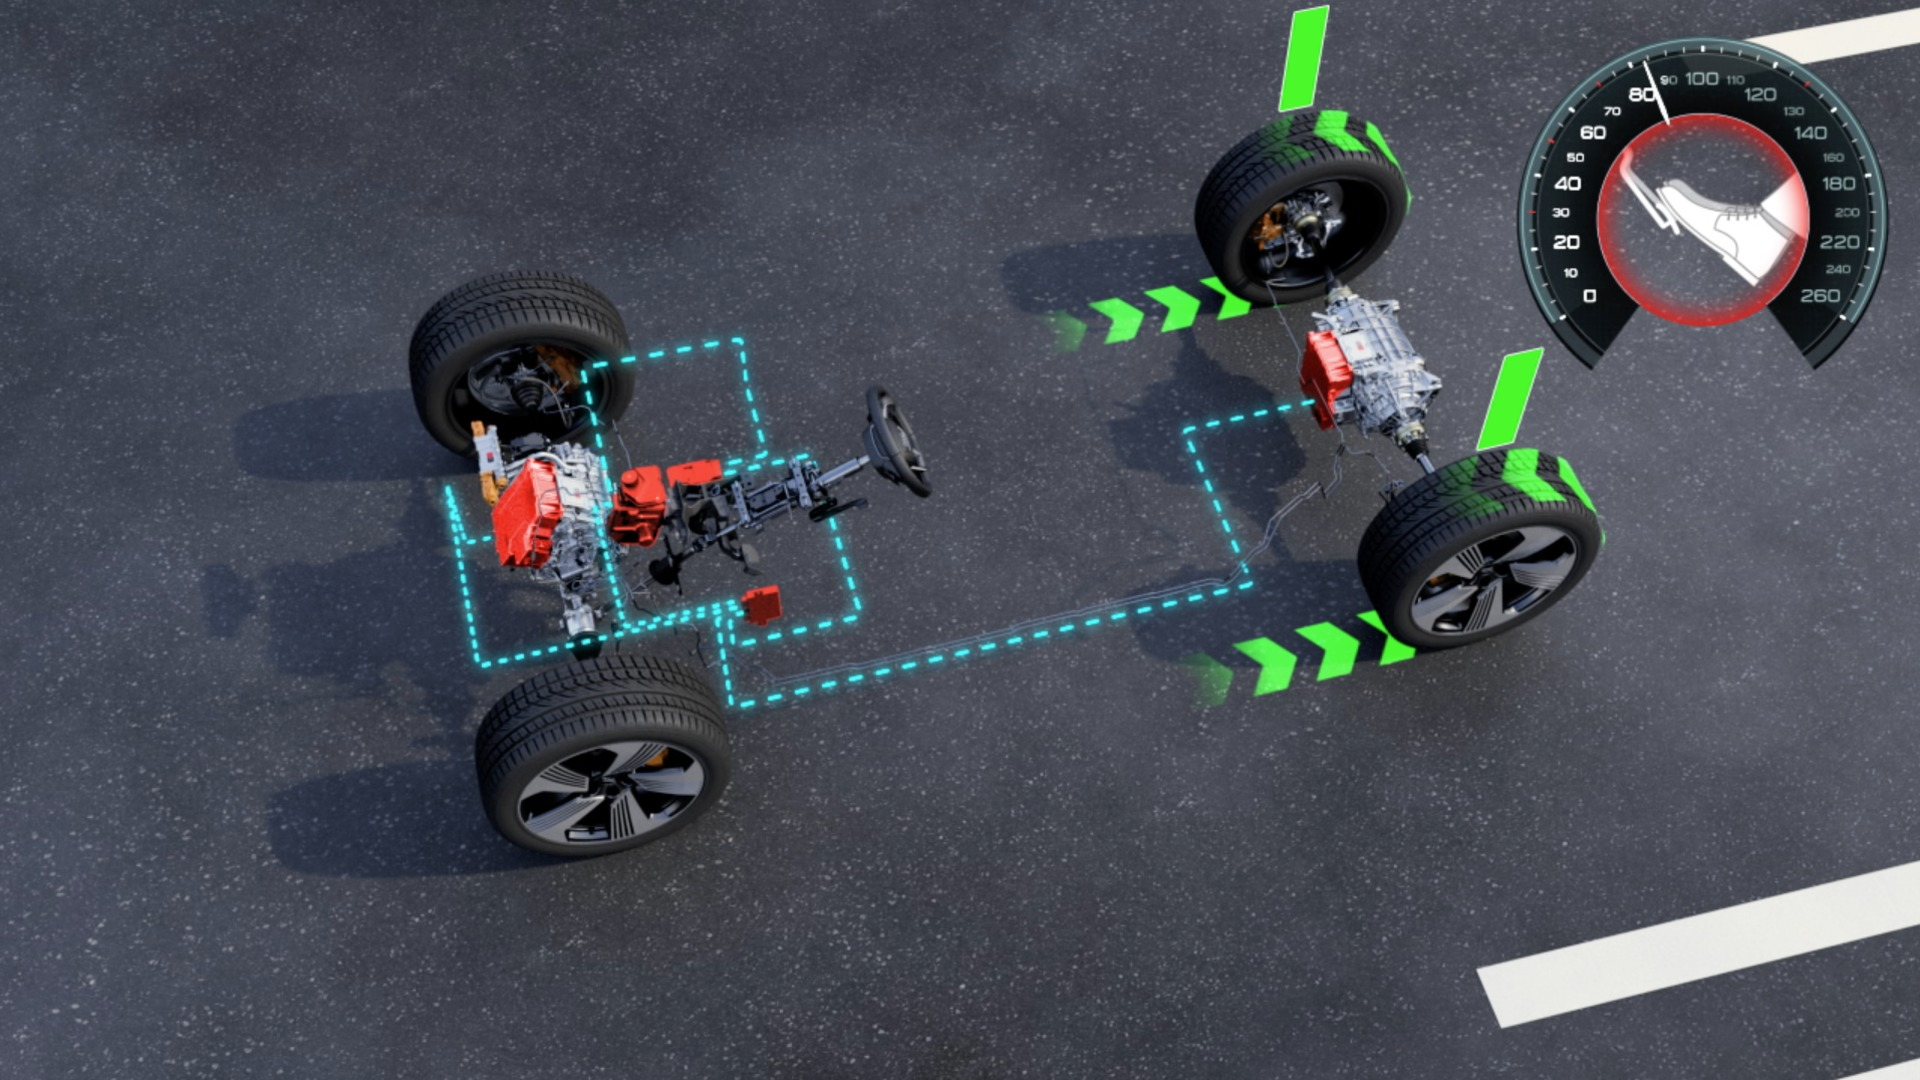 The recuperation system of the Audi e-tron (animation)